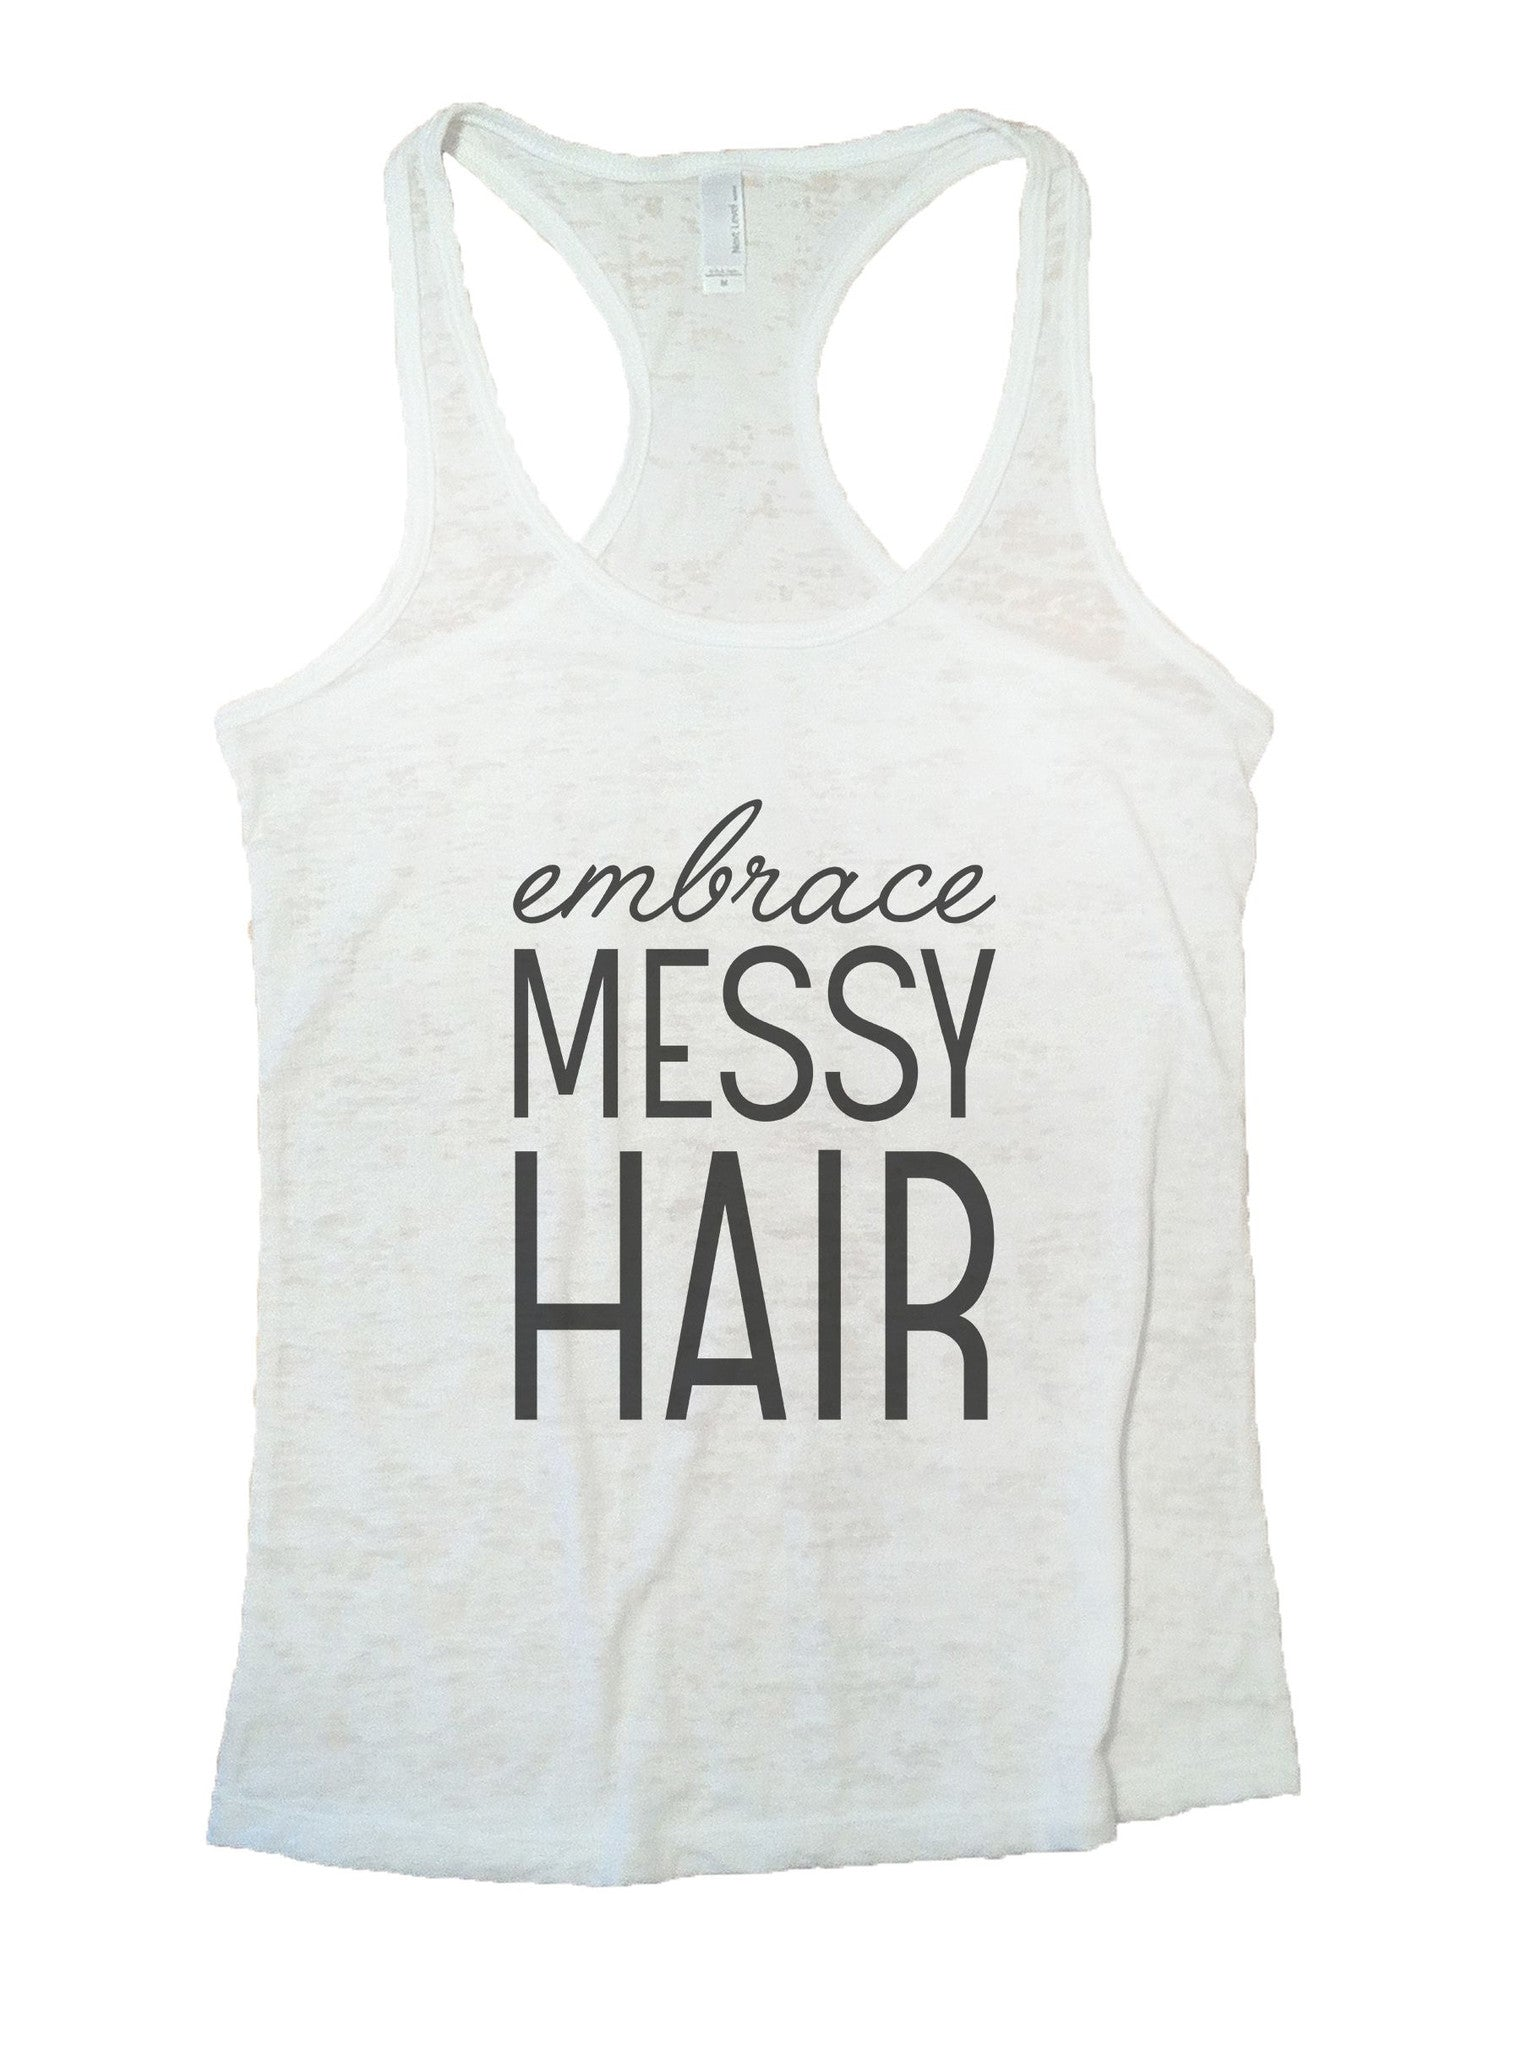 Embrace Messy Hair Burnout Tank Top By BurnoutTankTops.com - 940 - Funny Shirts Tank Tops Burnouts and Triblends  - 6